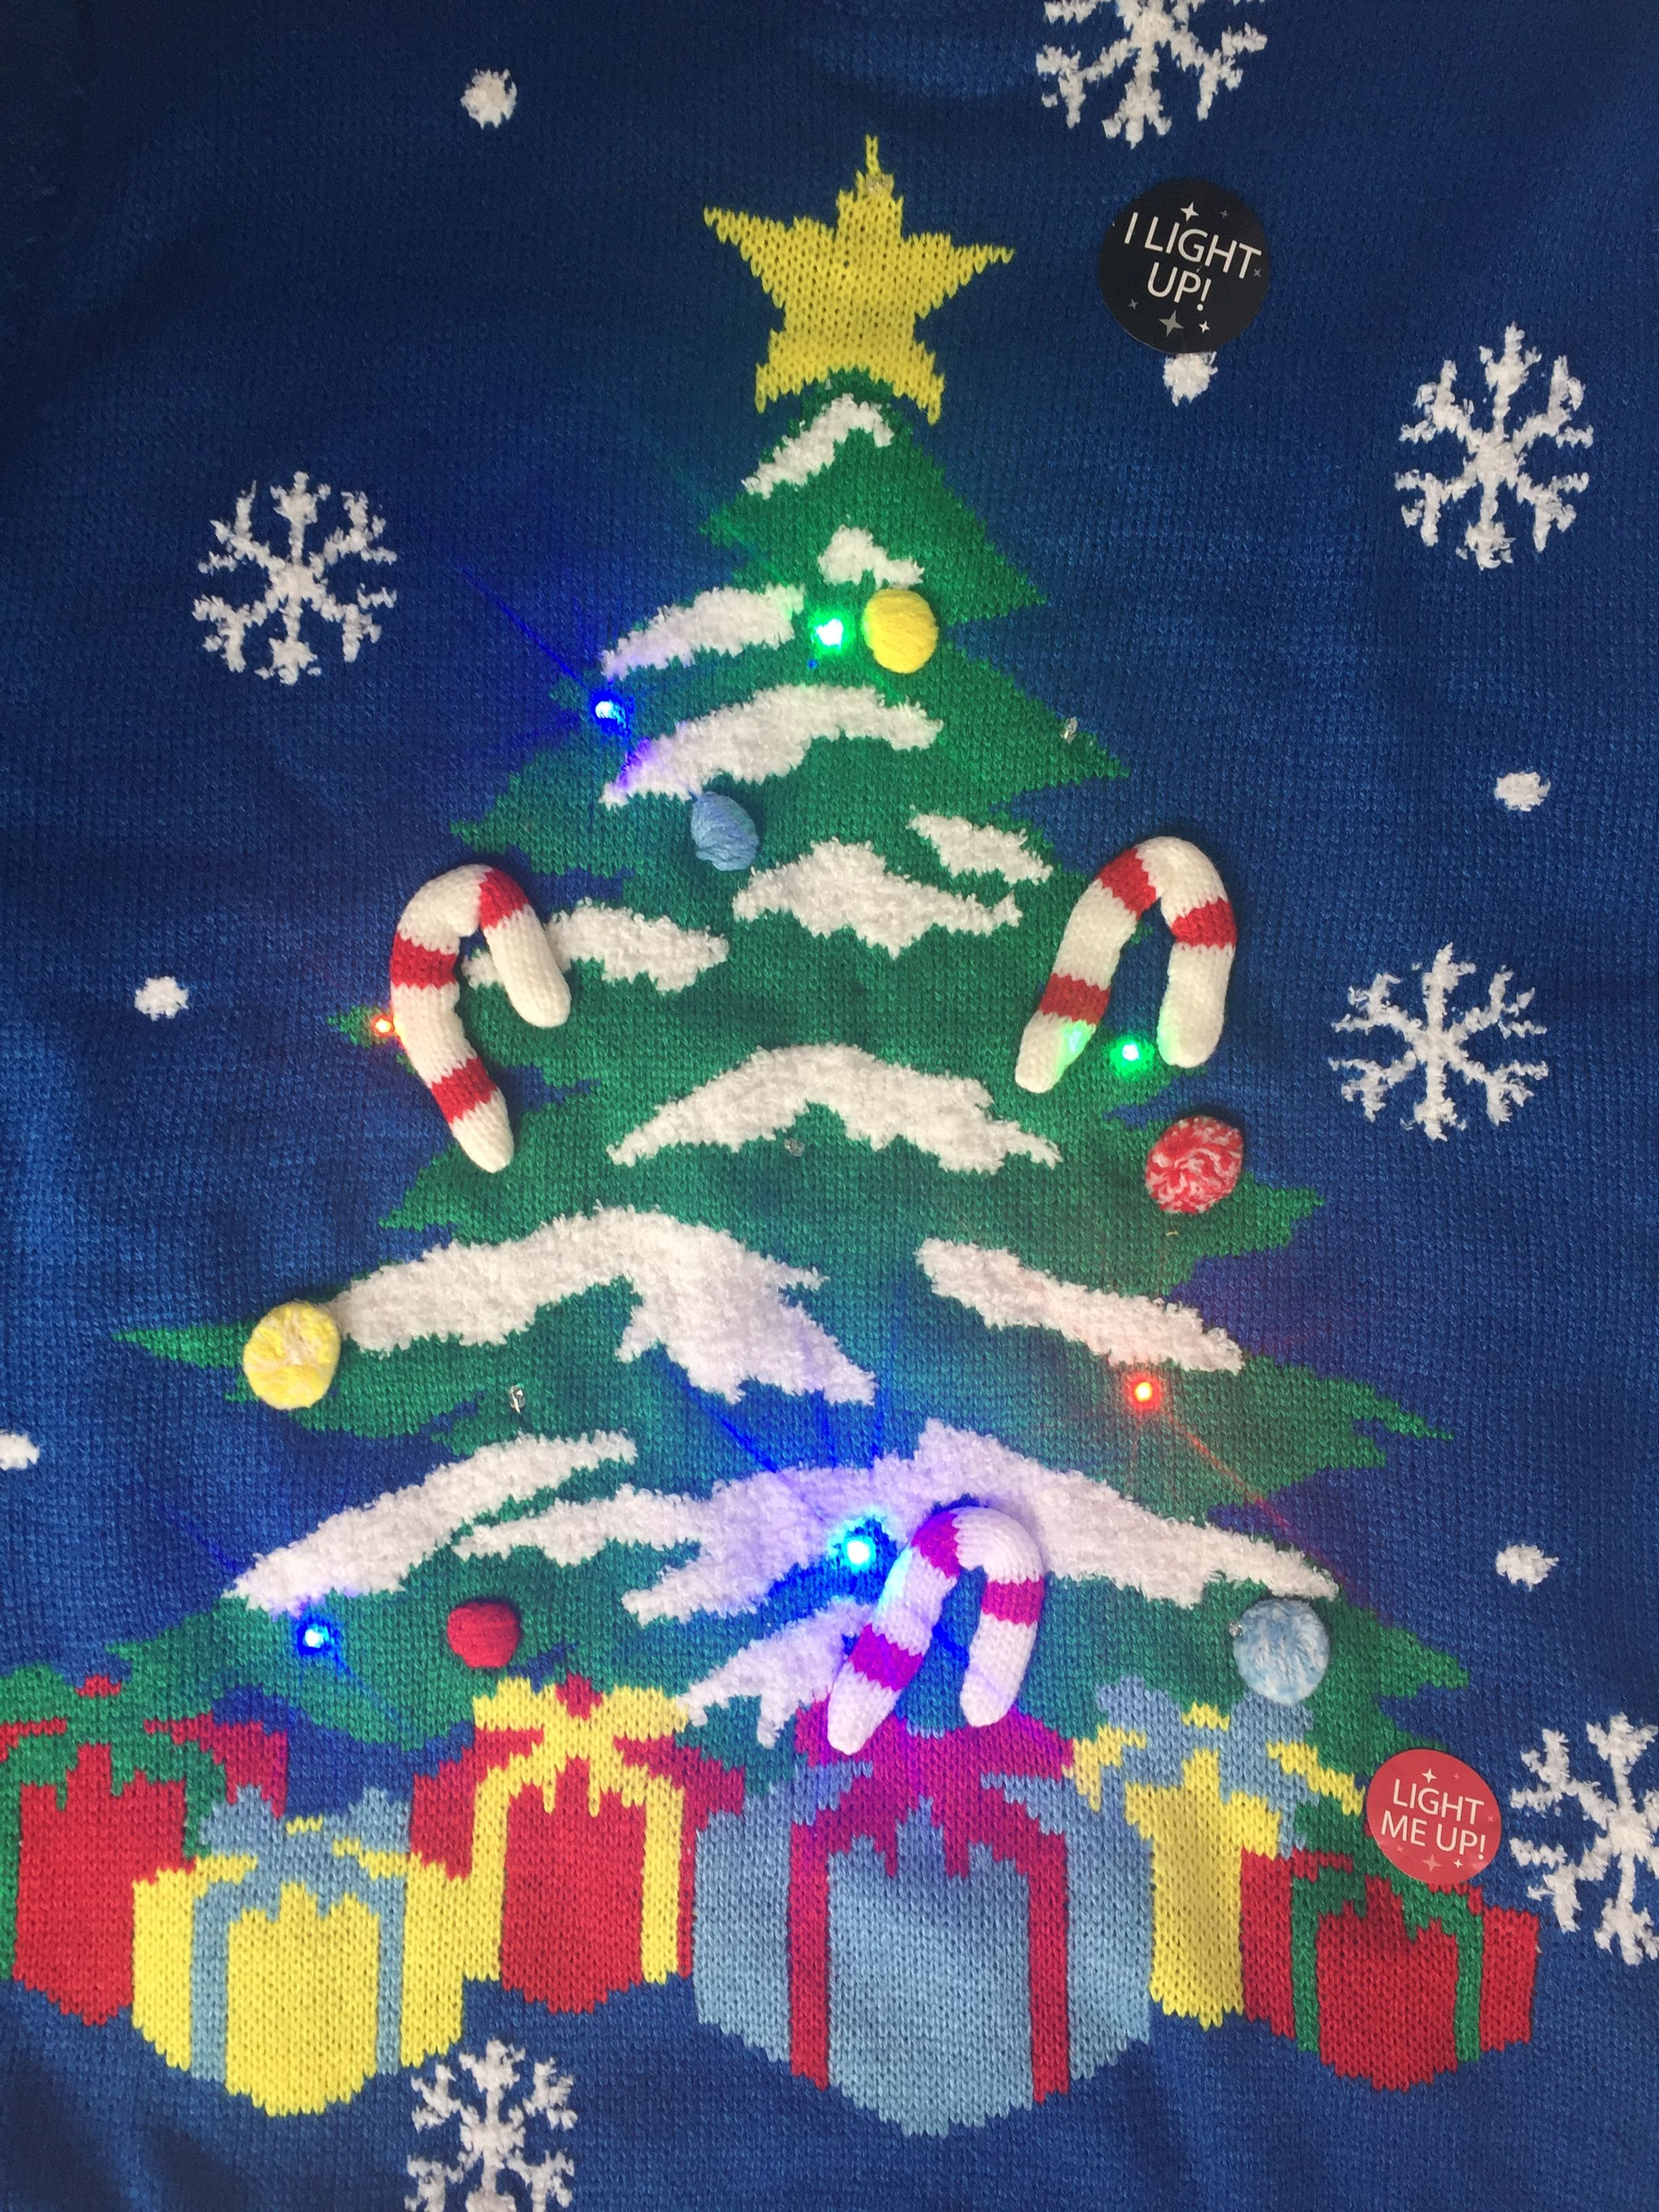 Details About Bnwt Primark Christmas Jumpers I Light Up Christmas Tree S M L Primark Christmas Xmas Jumpers Christmas Tree Jumper